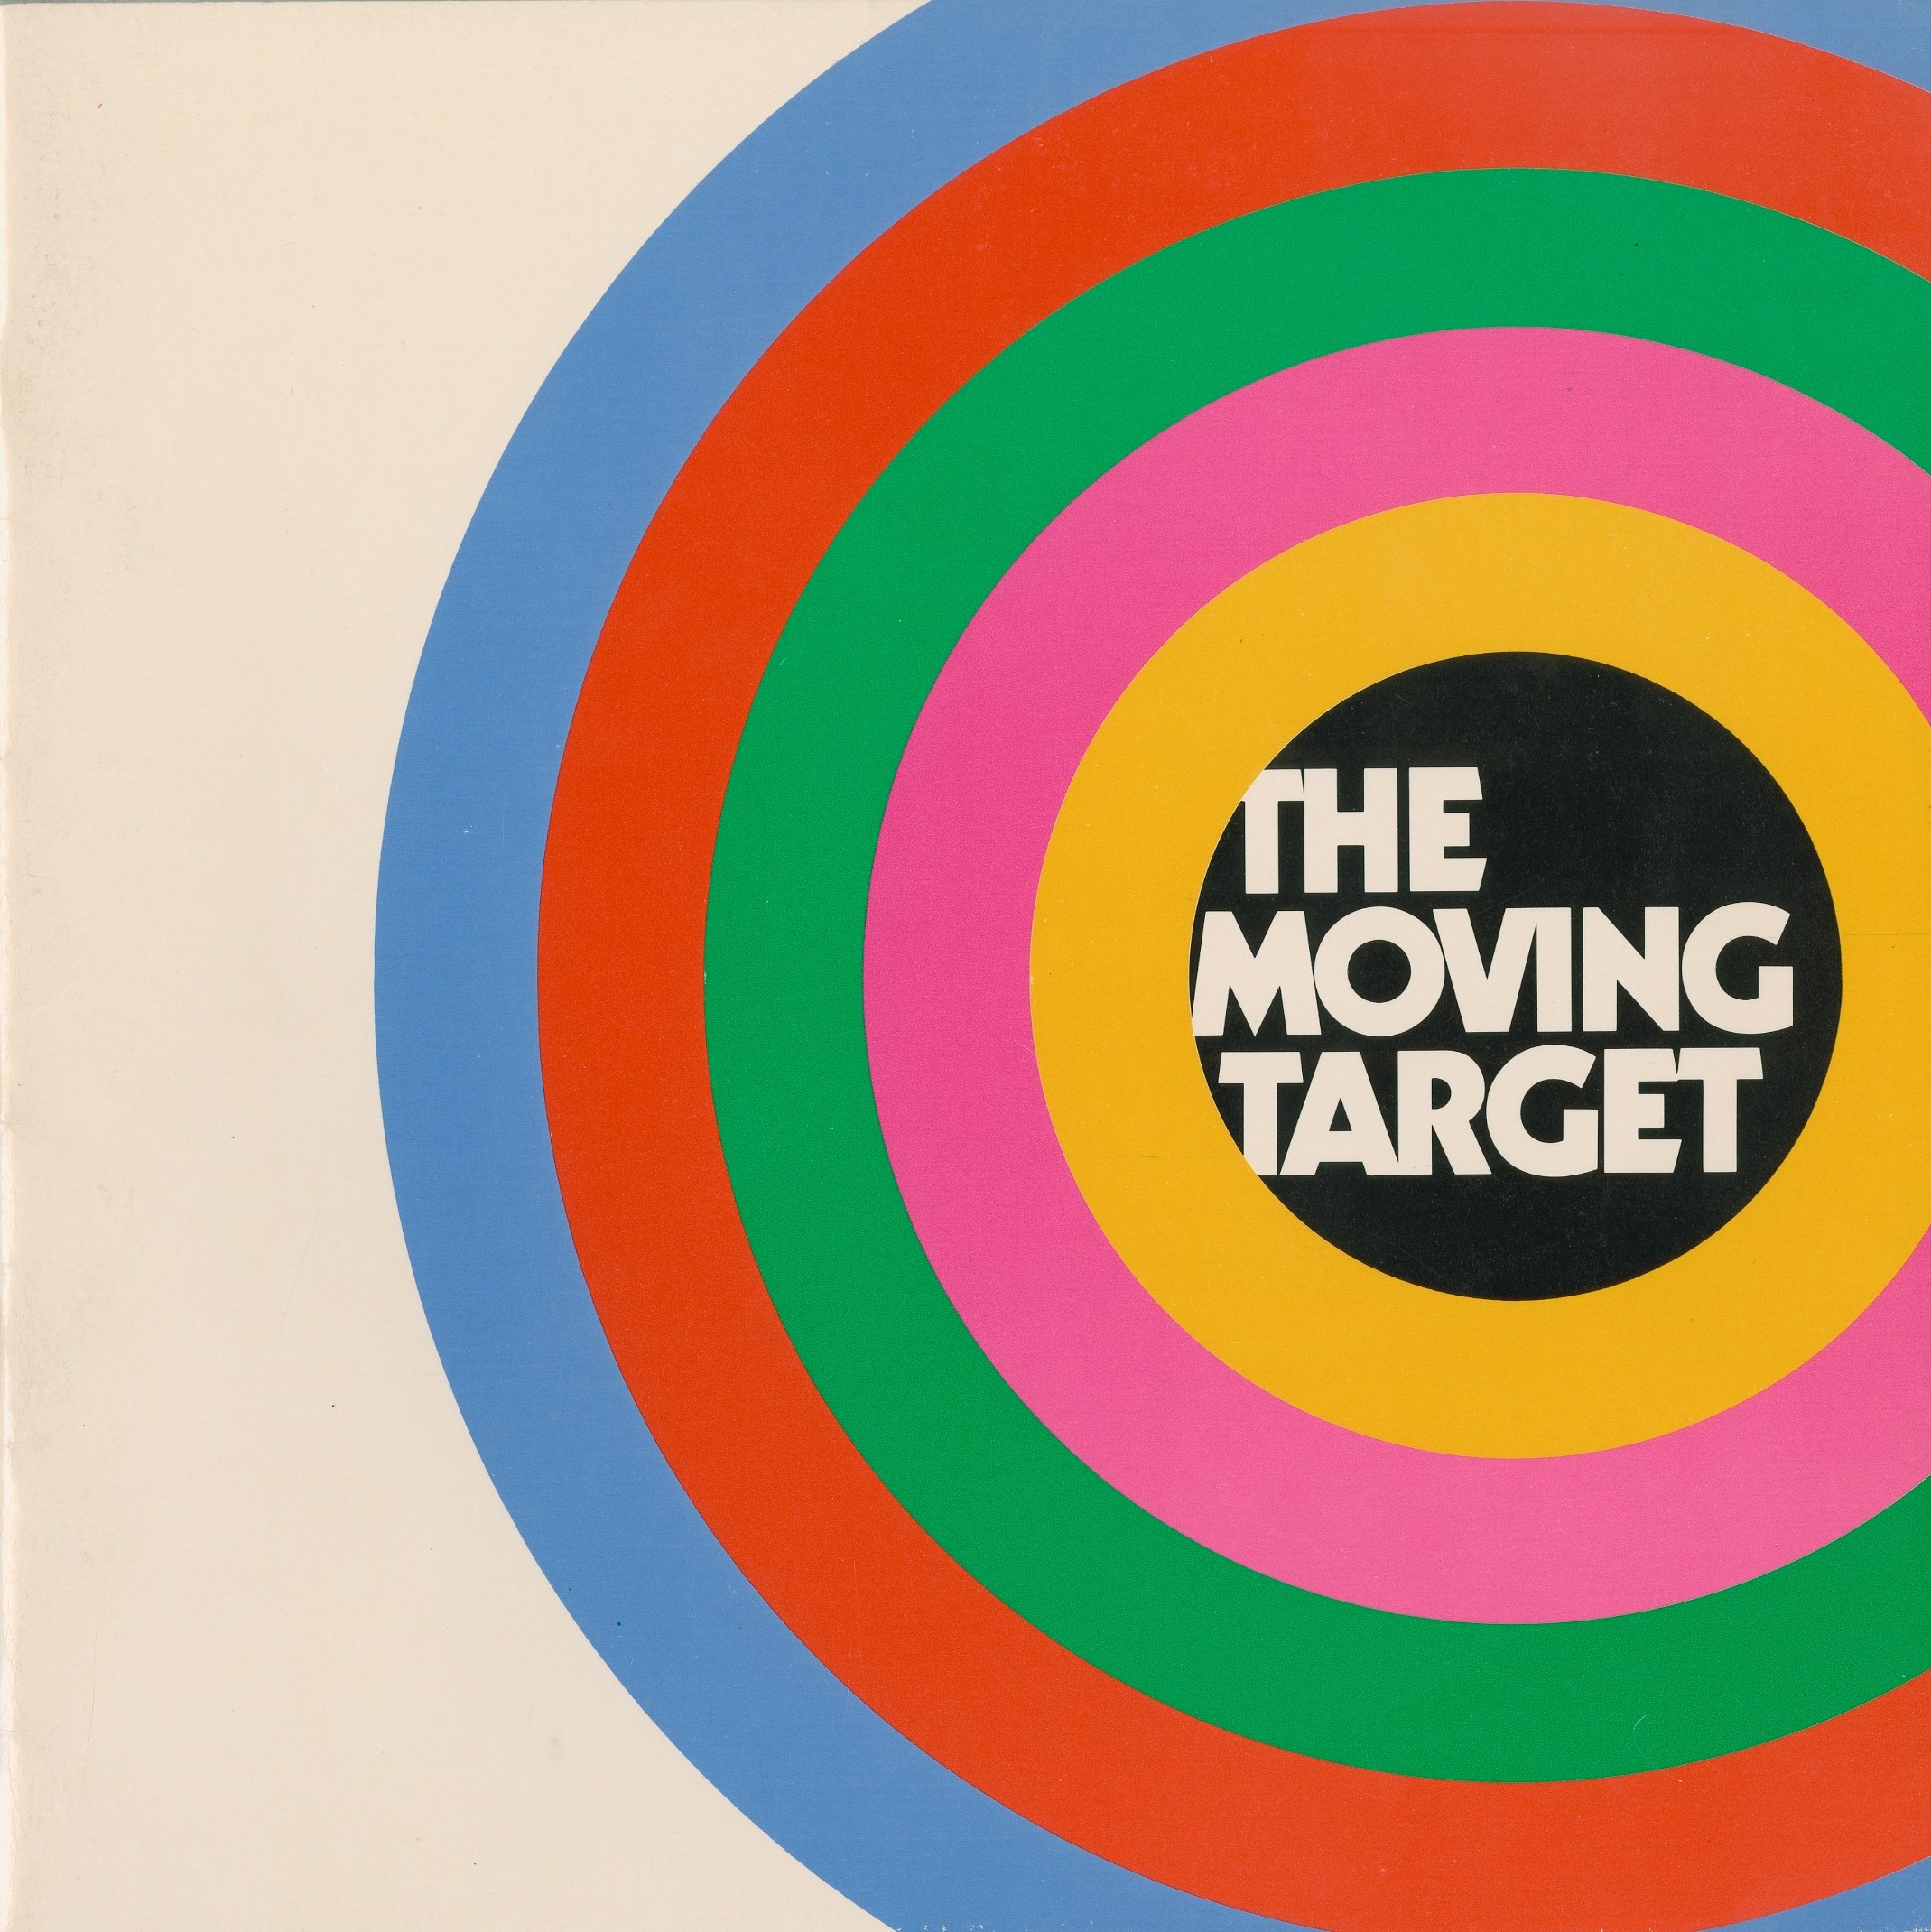 The Moving Target cover